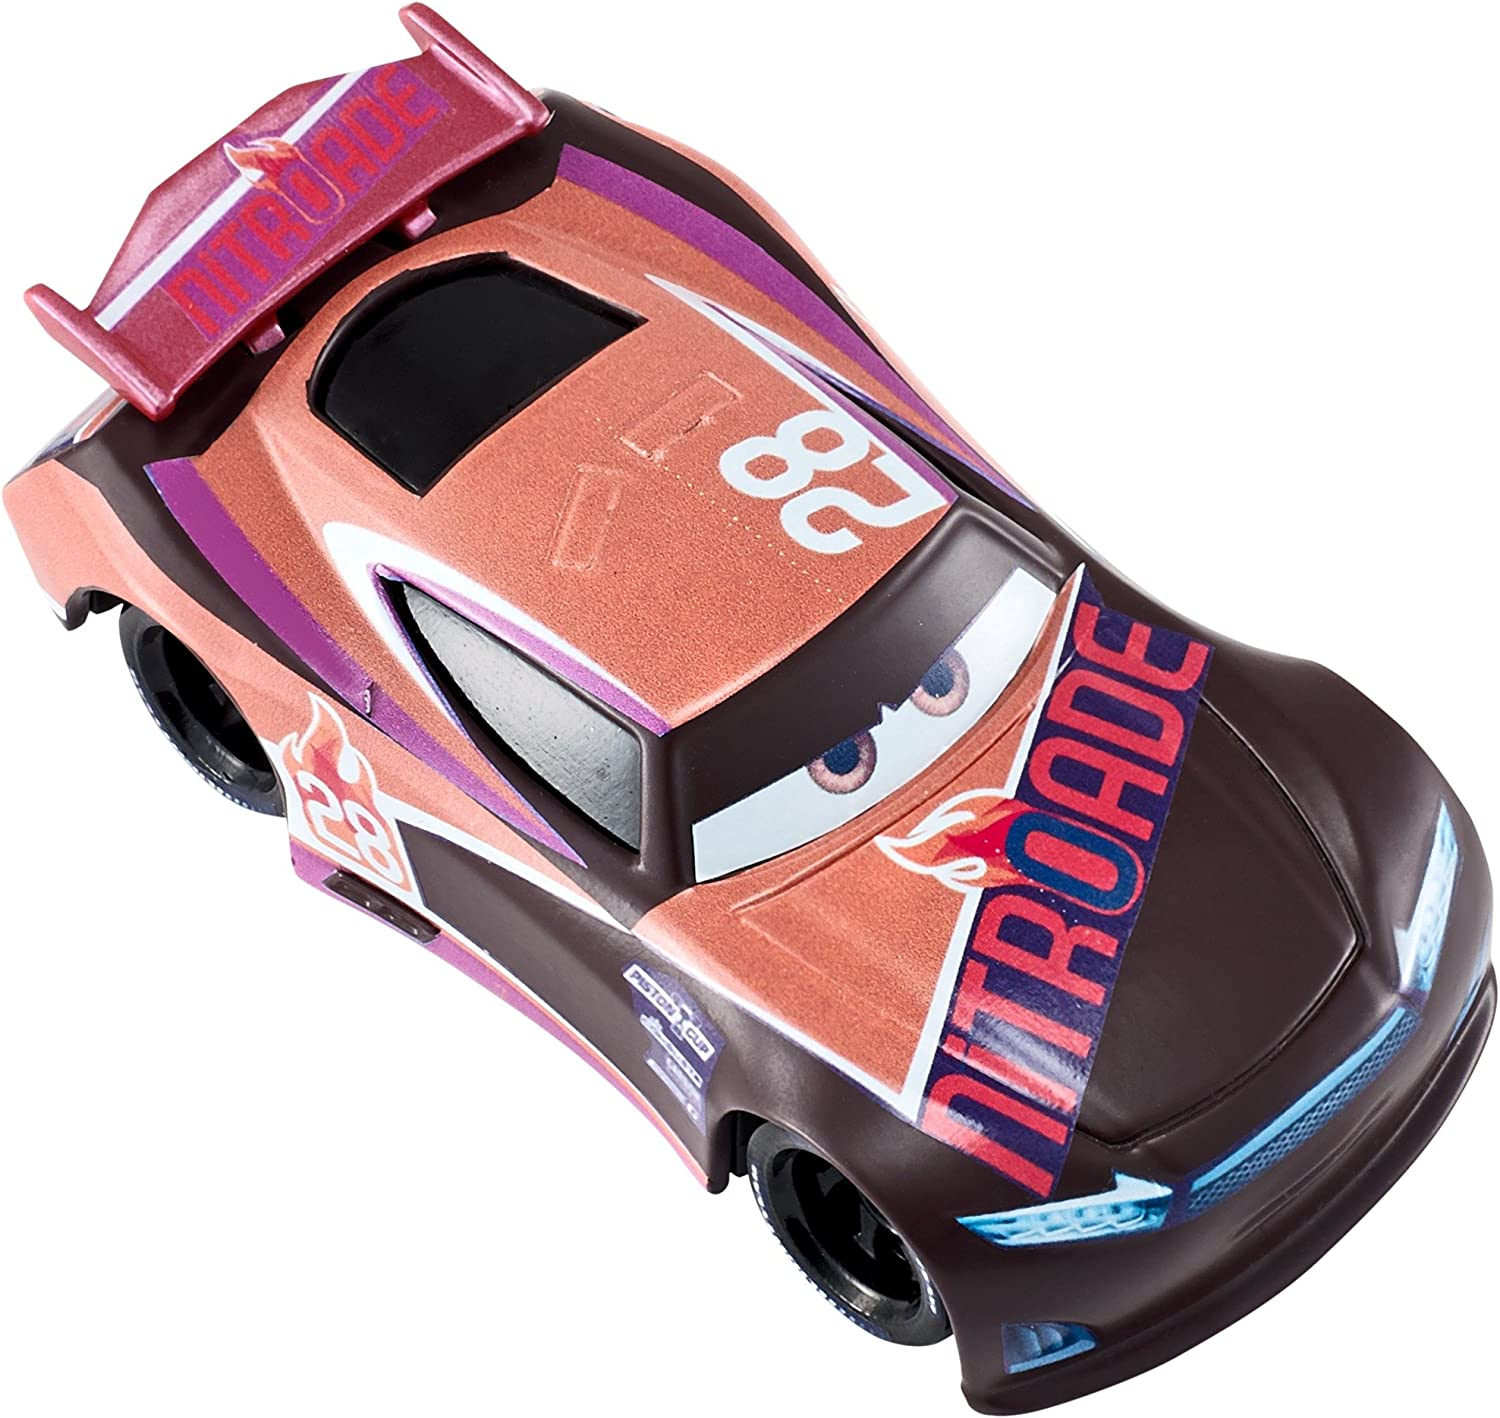 DISNEY PIXAR CARS 3 TIM TREADLESS NITROADE 2017 SAVE 5/% WORLDWIDE FAST SHIP